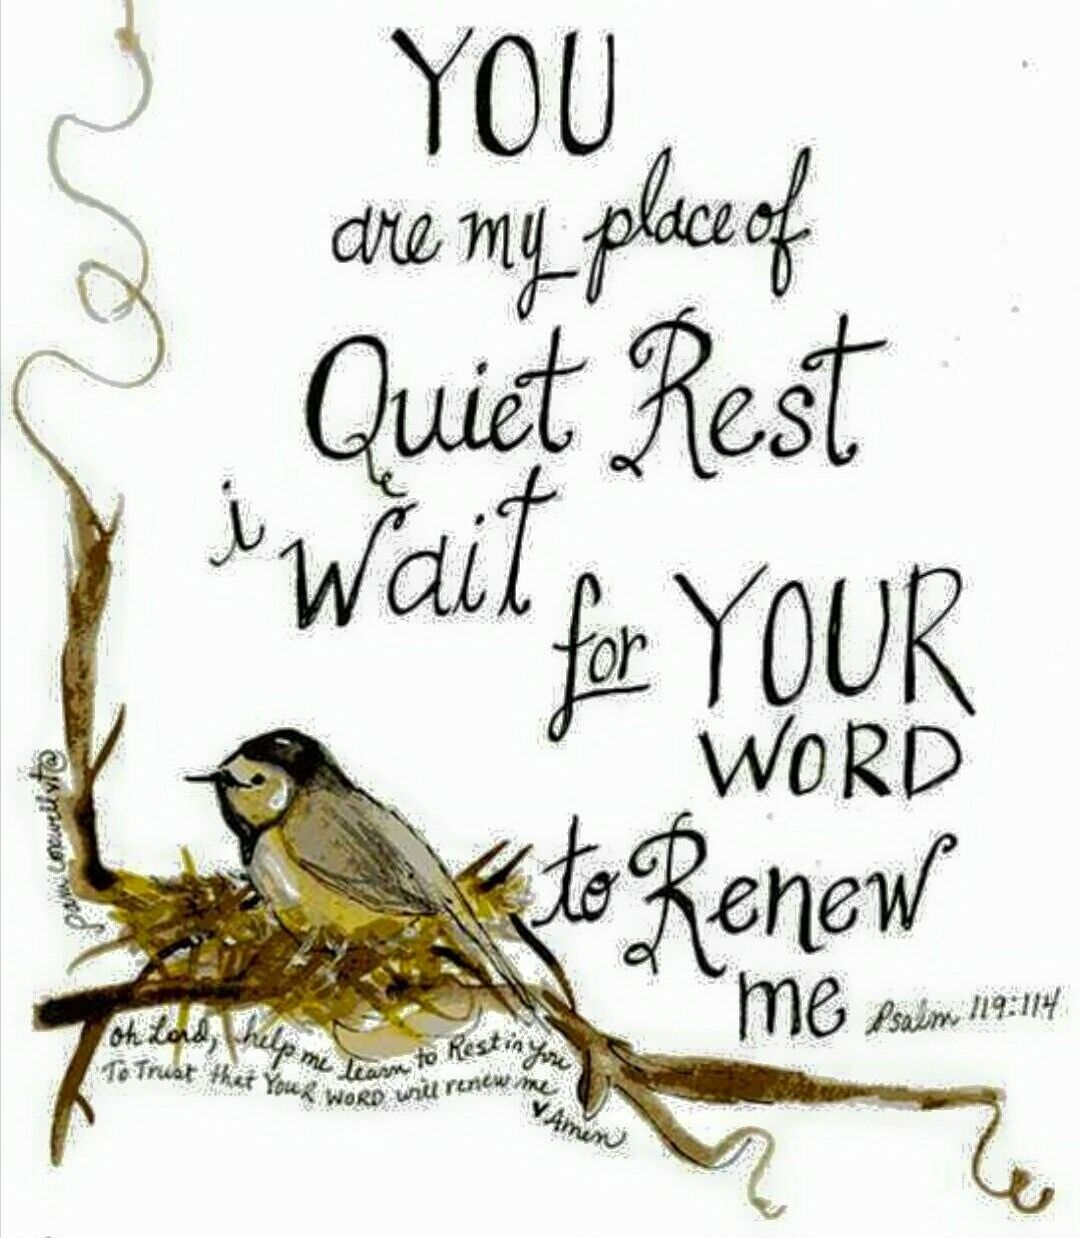 Rest in God Psalm 119:114